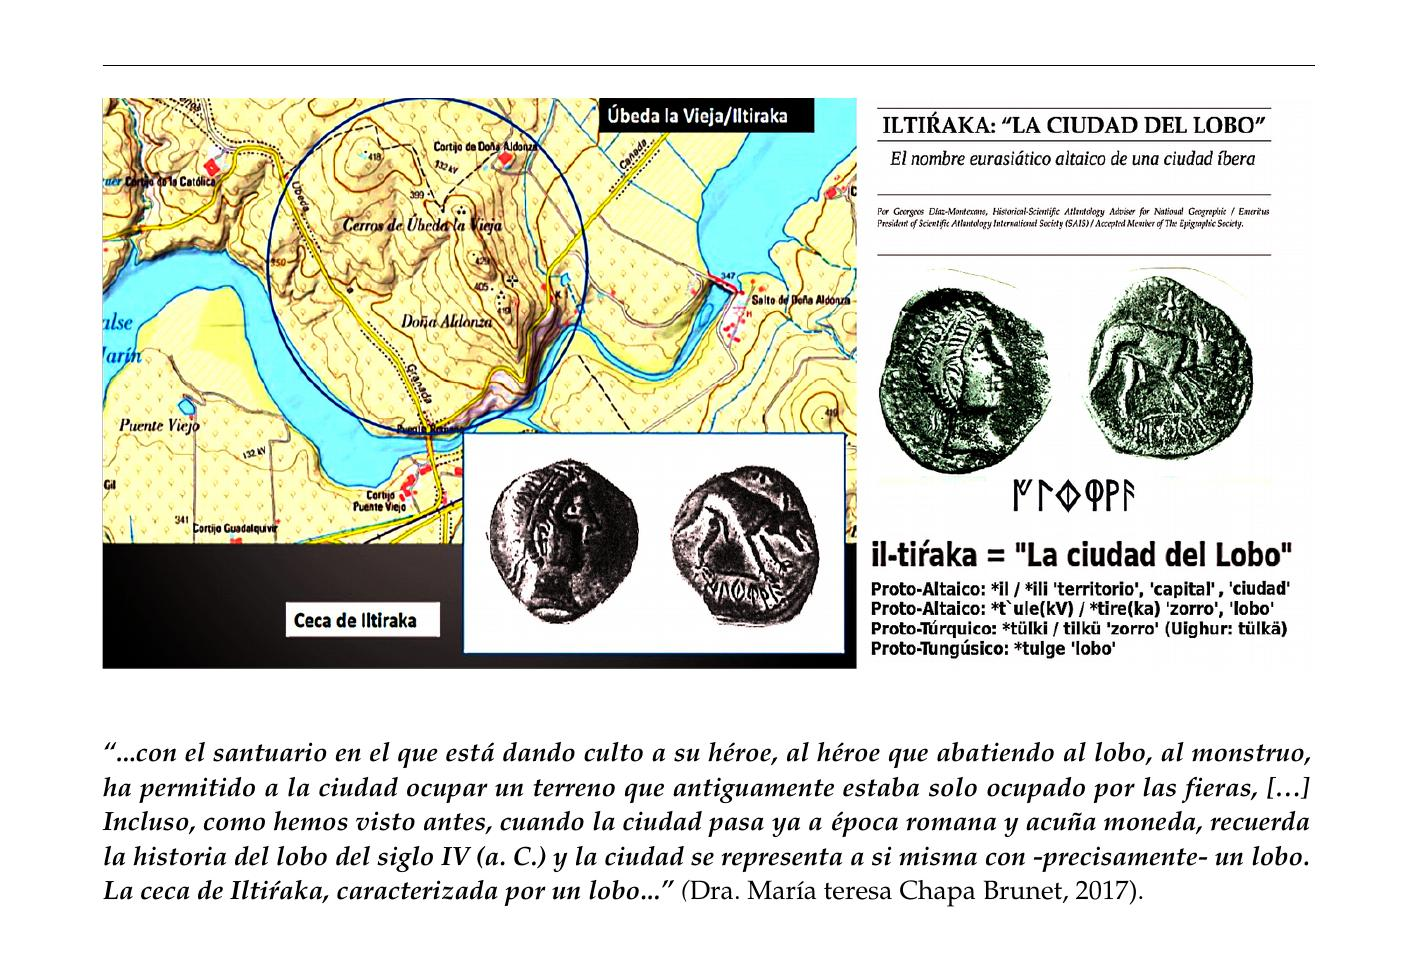 "iltiŕaka: ""La ciudad del lobo"" El legendario nombre eurasiático altaico de una ciudad íbera Por Georgeos Díaz-Montexano, Historical-Scientific Atlantology Adviser for National Geographic / Emeritus President of Scientific Atlantology International Society (SAIS) / Accepted Member of The Epigraphic Society."